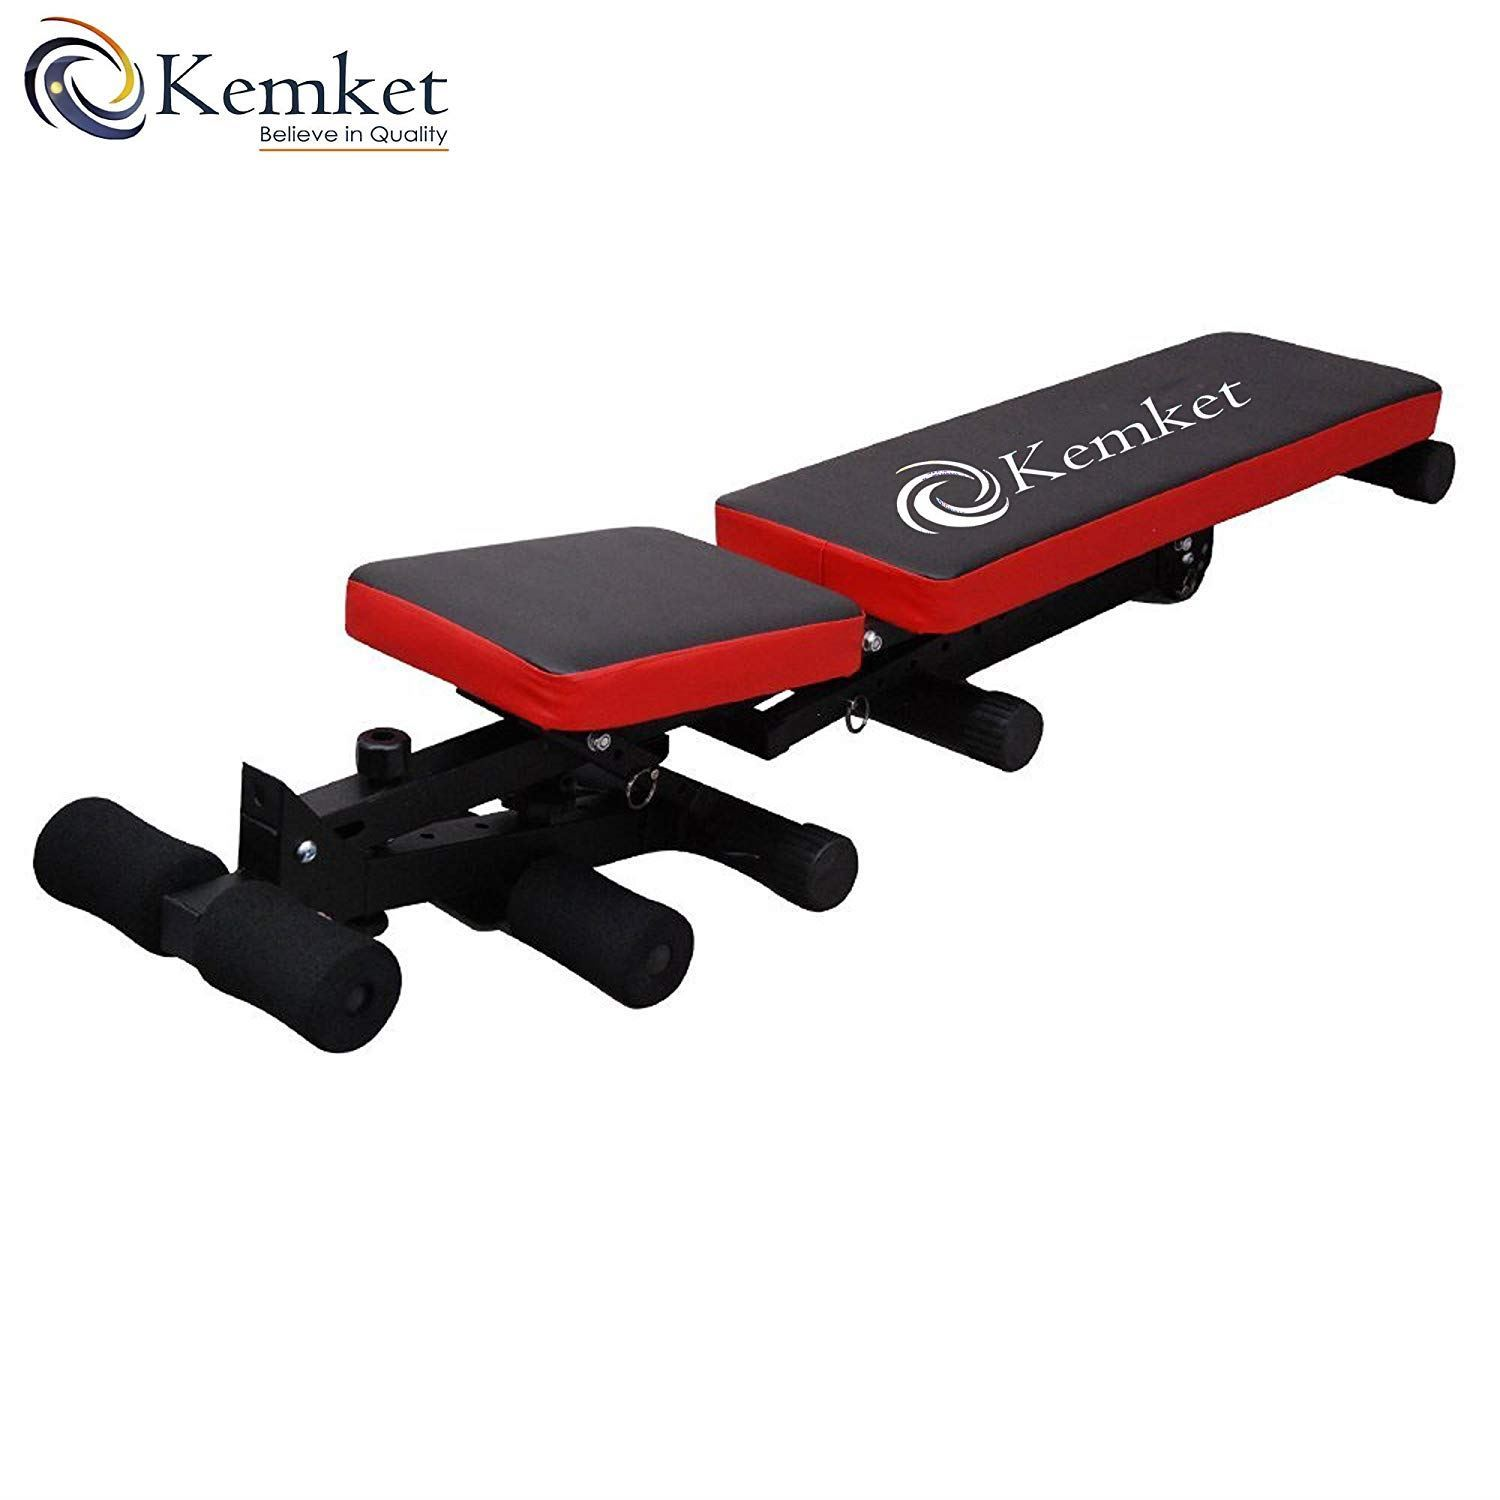 Astircare Ltd Fully Adjustable Folding Gym Weight Bench Home Workout Bench Height Adjustable